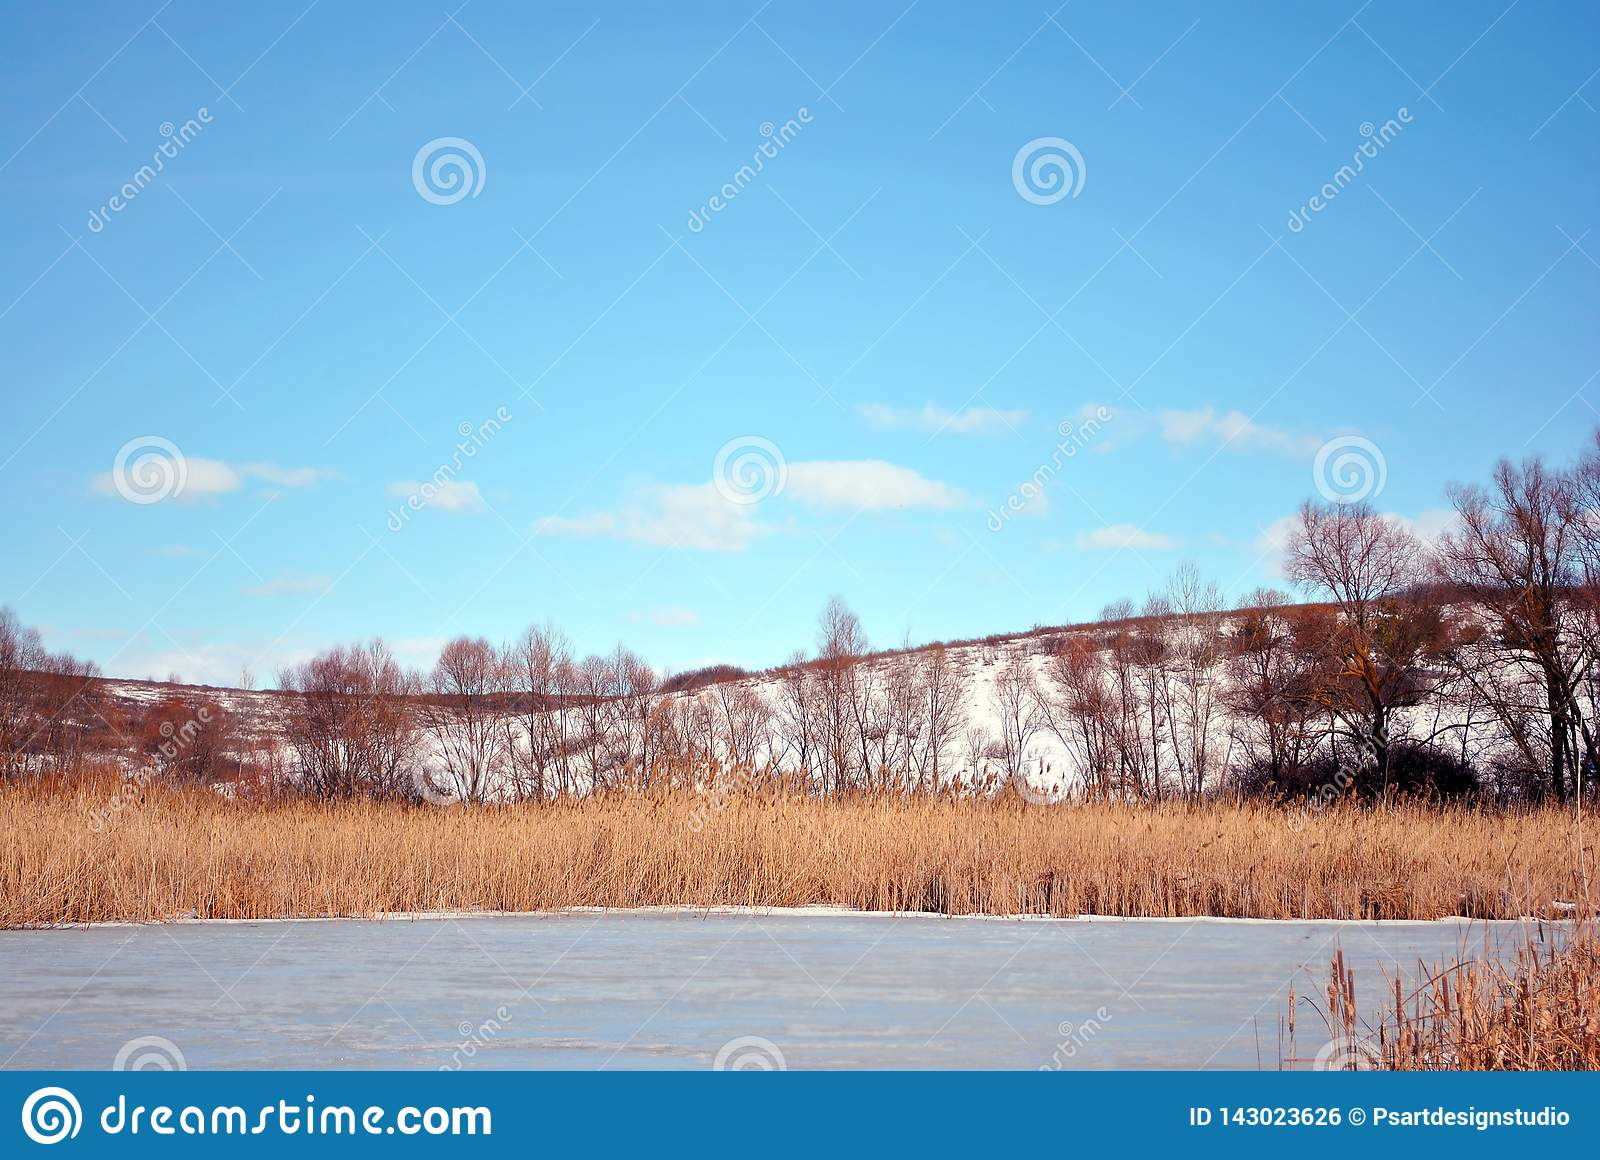 Yellow dry reeds on lake covered with ice bank with willow trees without leaves covered with snow, blue cloudy sky